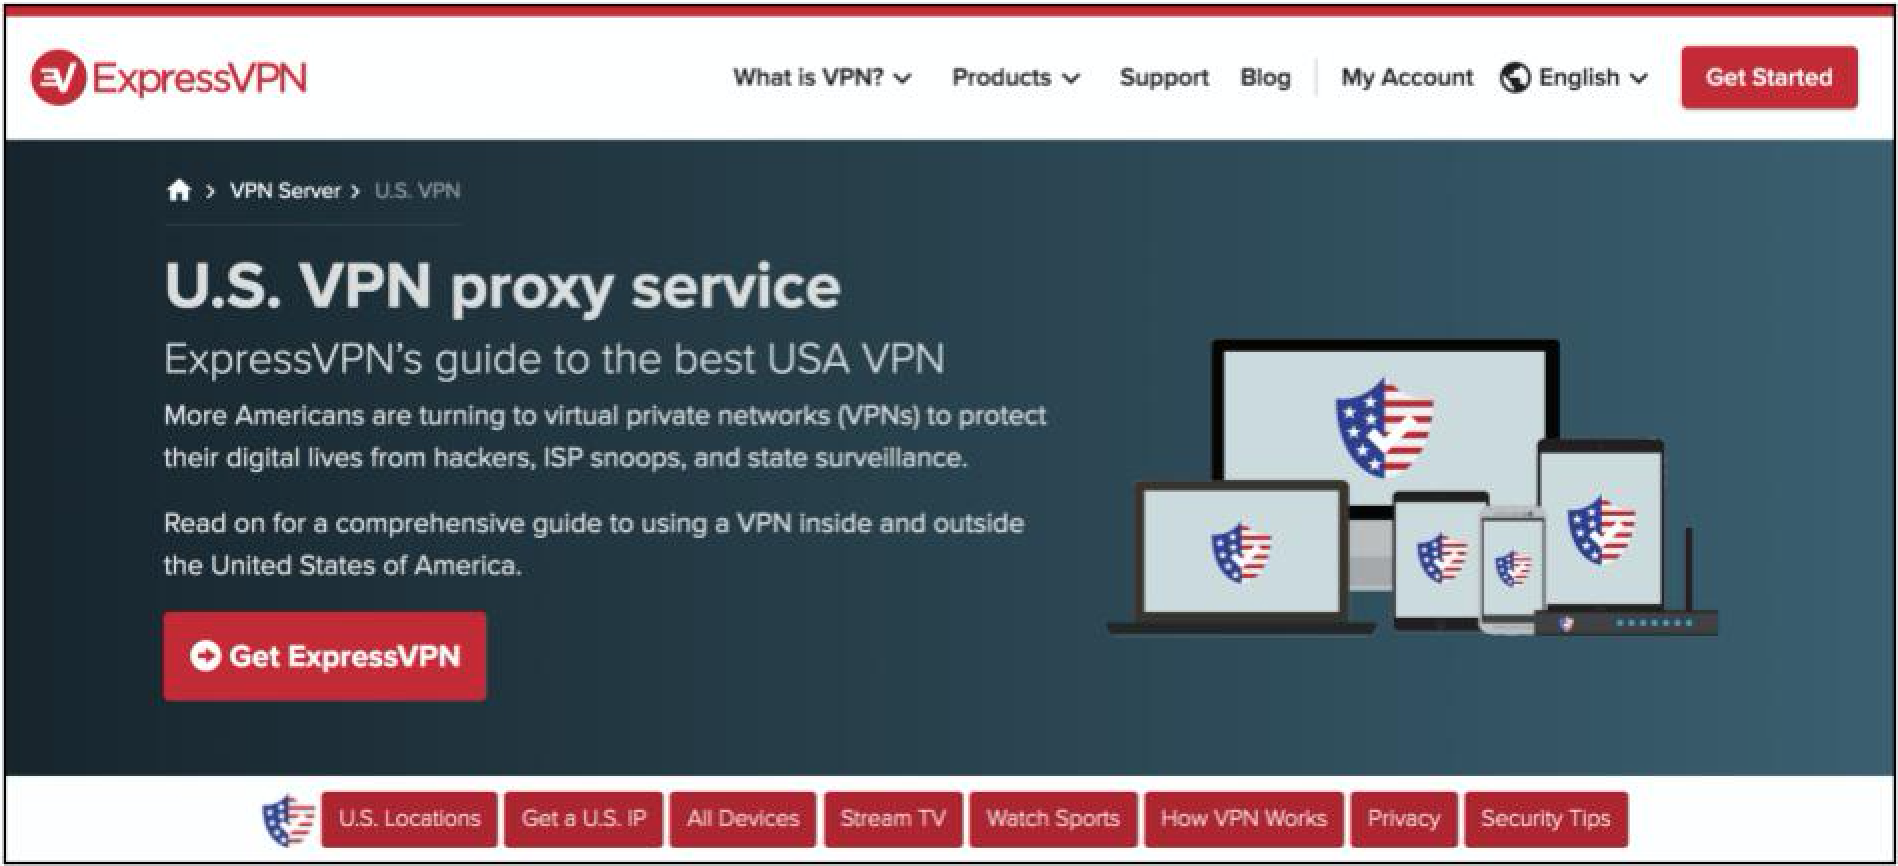 Screenshot of ExpressVPN's vendor welcome page for its US VPN service with product information and purchasing links. Reply... Caley Mikesell Caley Mikesell 7:43 PM Mar 31 Affiliate link: ExpressVPN Deeplink: Free Trial Alt text: Screenshot of ExpressVPN connected to US server and allowing user to access Bank of America account. Caley Mikesell Caley Mikesell 4:40 PM Mar 26 affiliate link nordvpn Toggle screen reader support panel 1 by 1